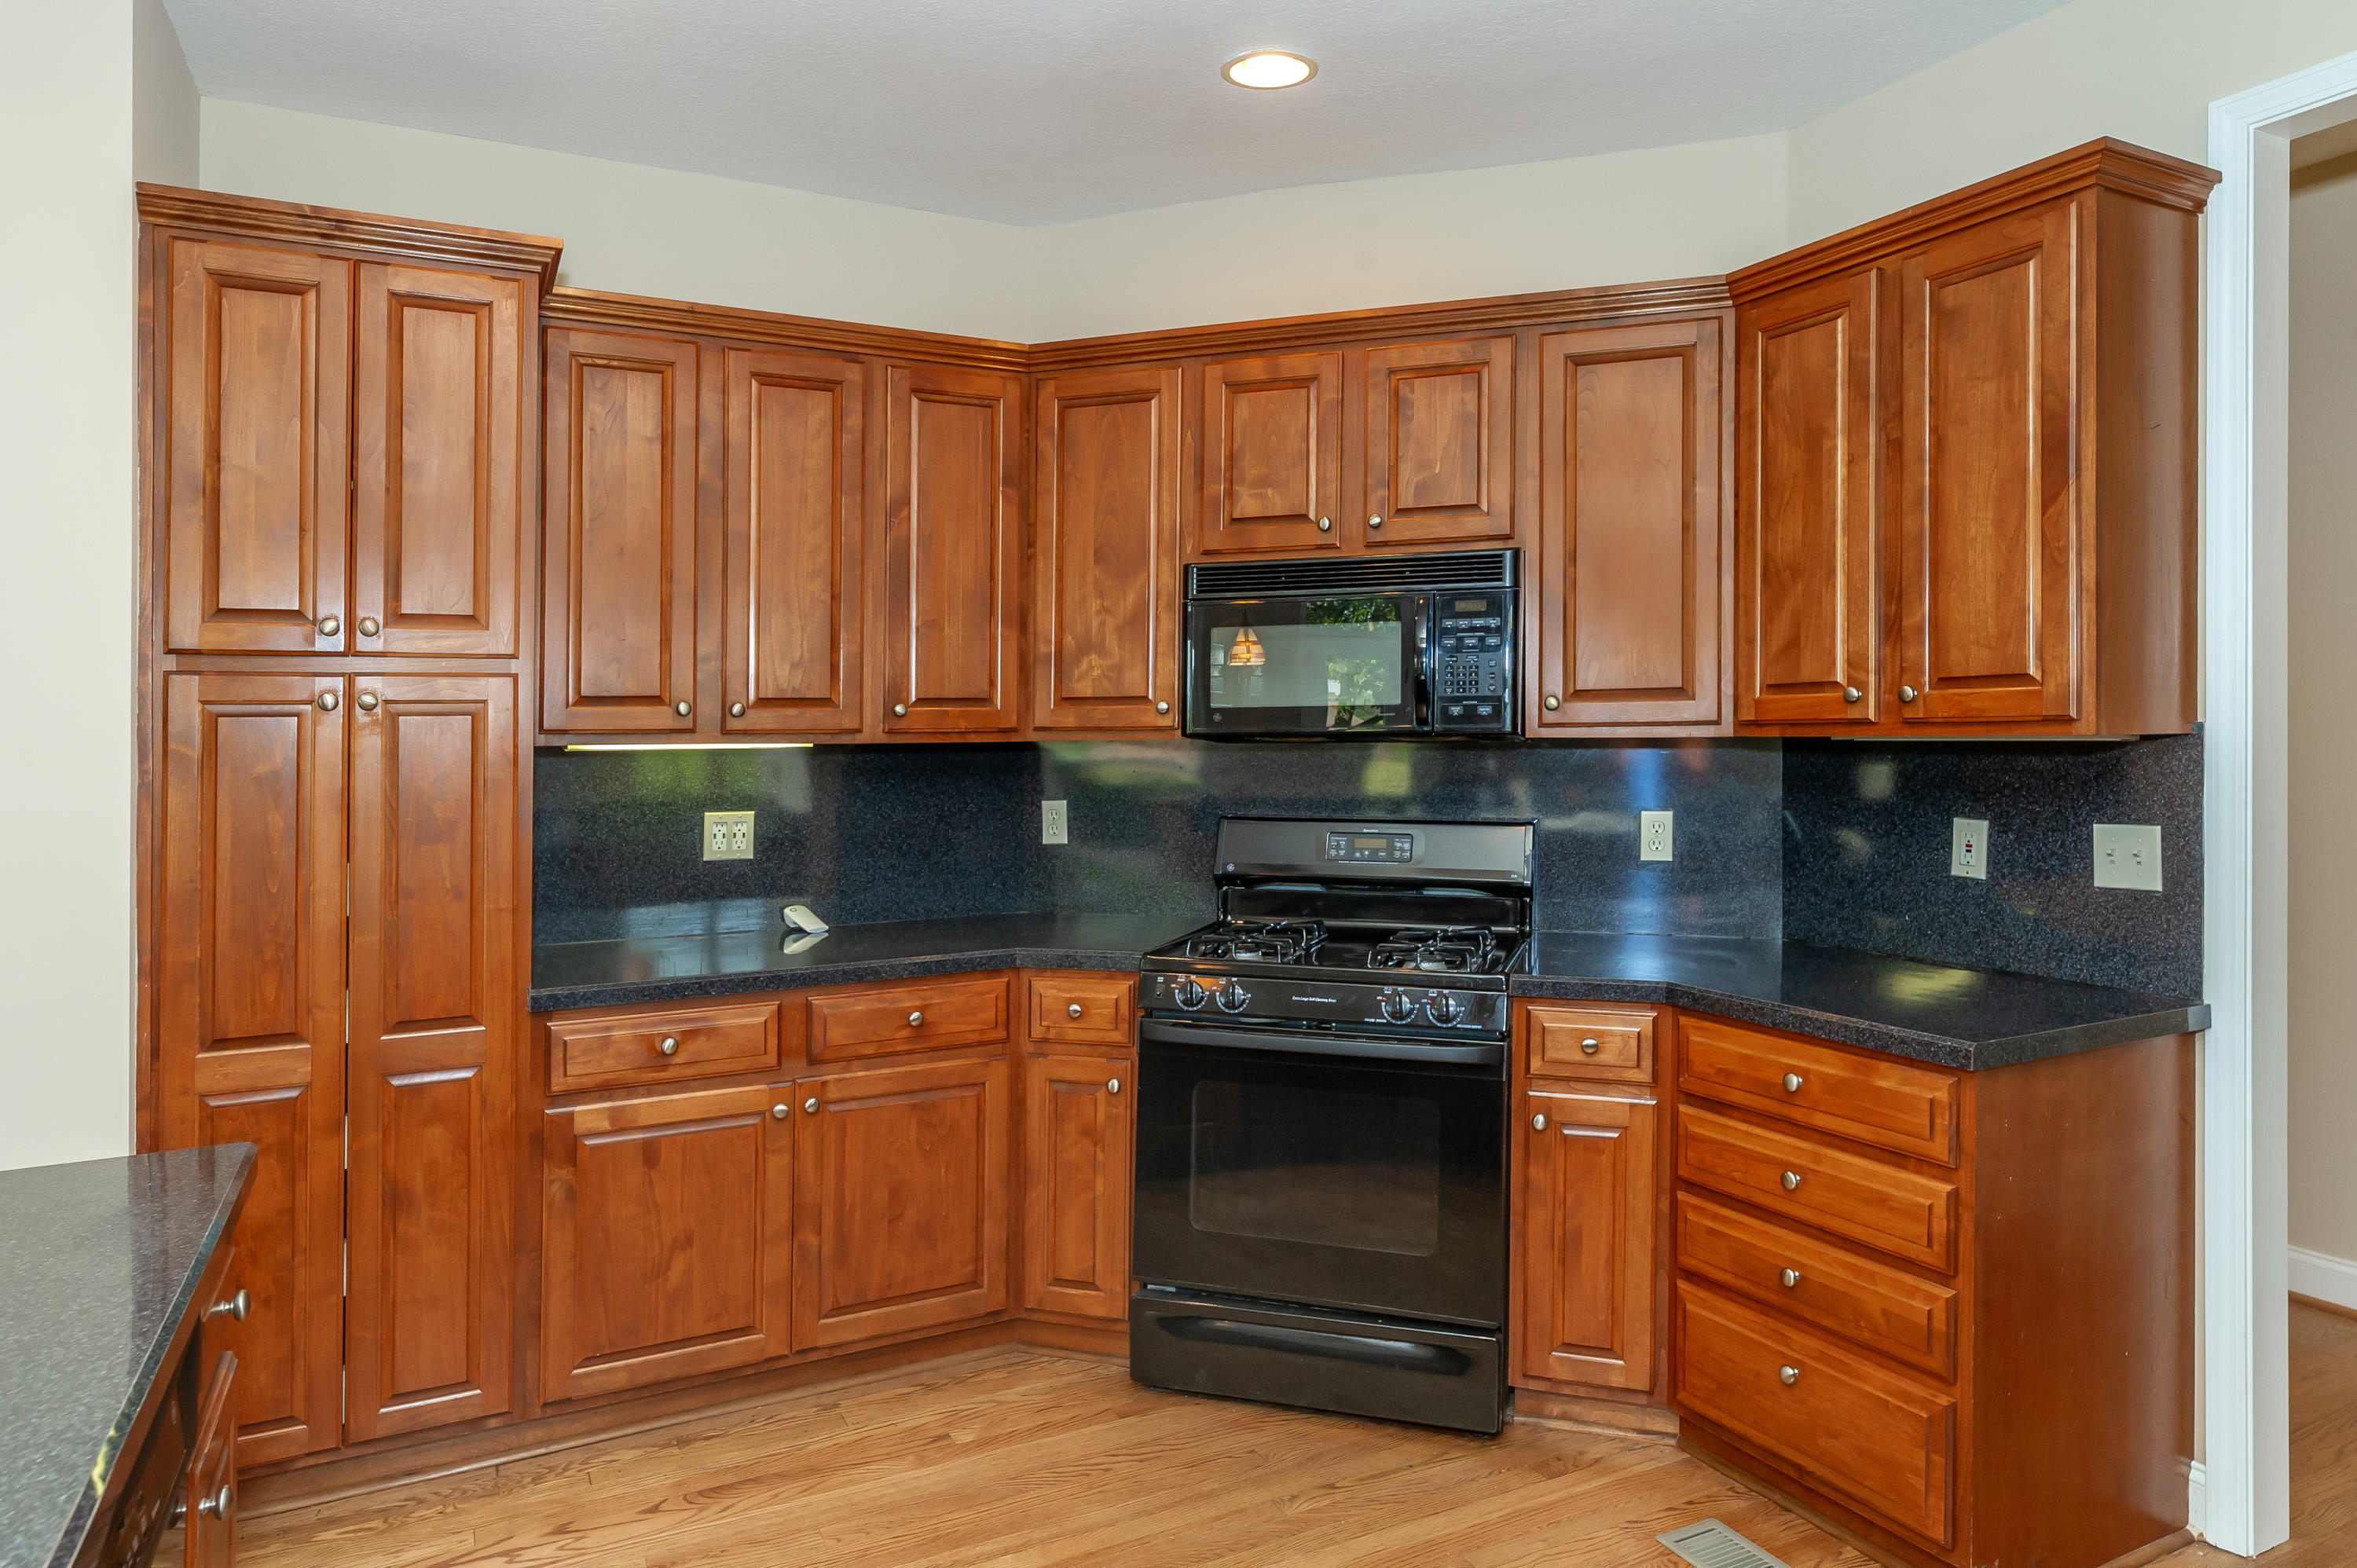 240 Goldcrest Drive, Vonore, Tennessee 37885, 3 Bedrooms Bedrooms, ,2 BathroomsBathrooms,Single Family,For Sale,Goldcrest,1090931